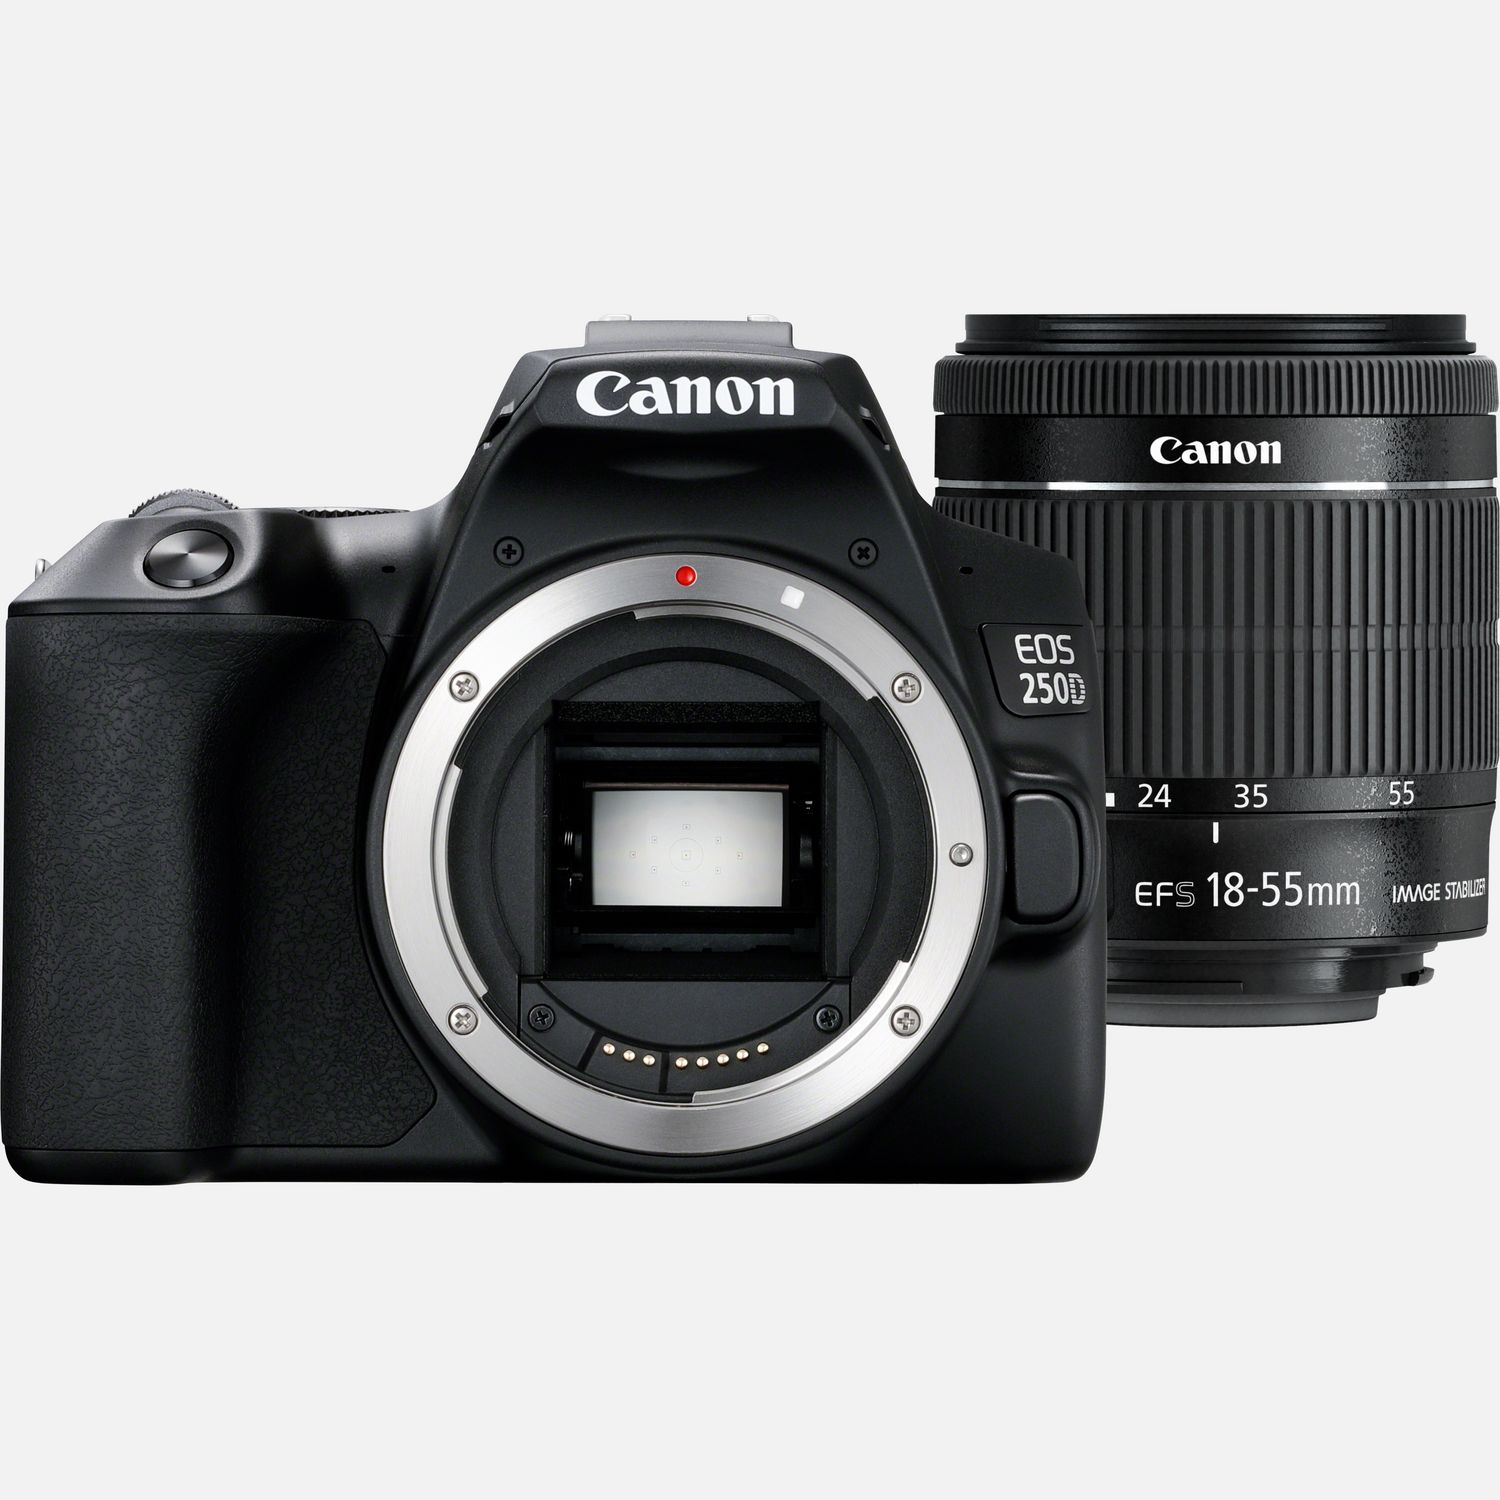 Image of Canon EOS 250D Body, Black and EF-S 18-55mm f/4-5.6 IS STM Lens